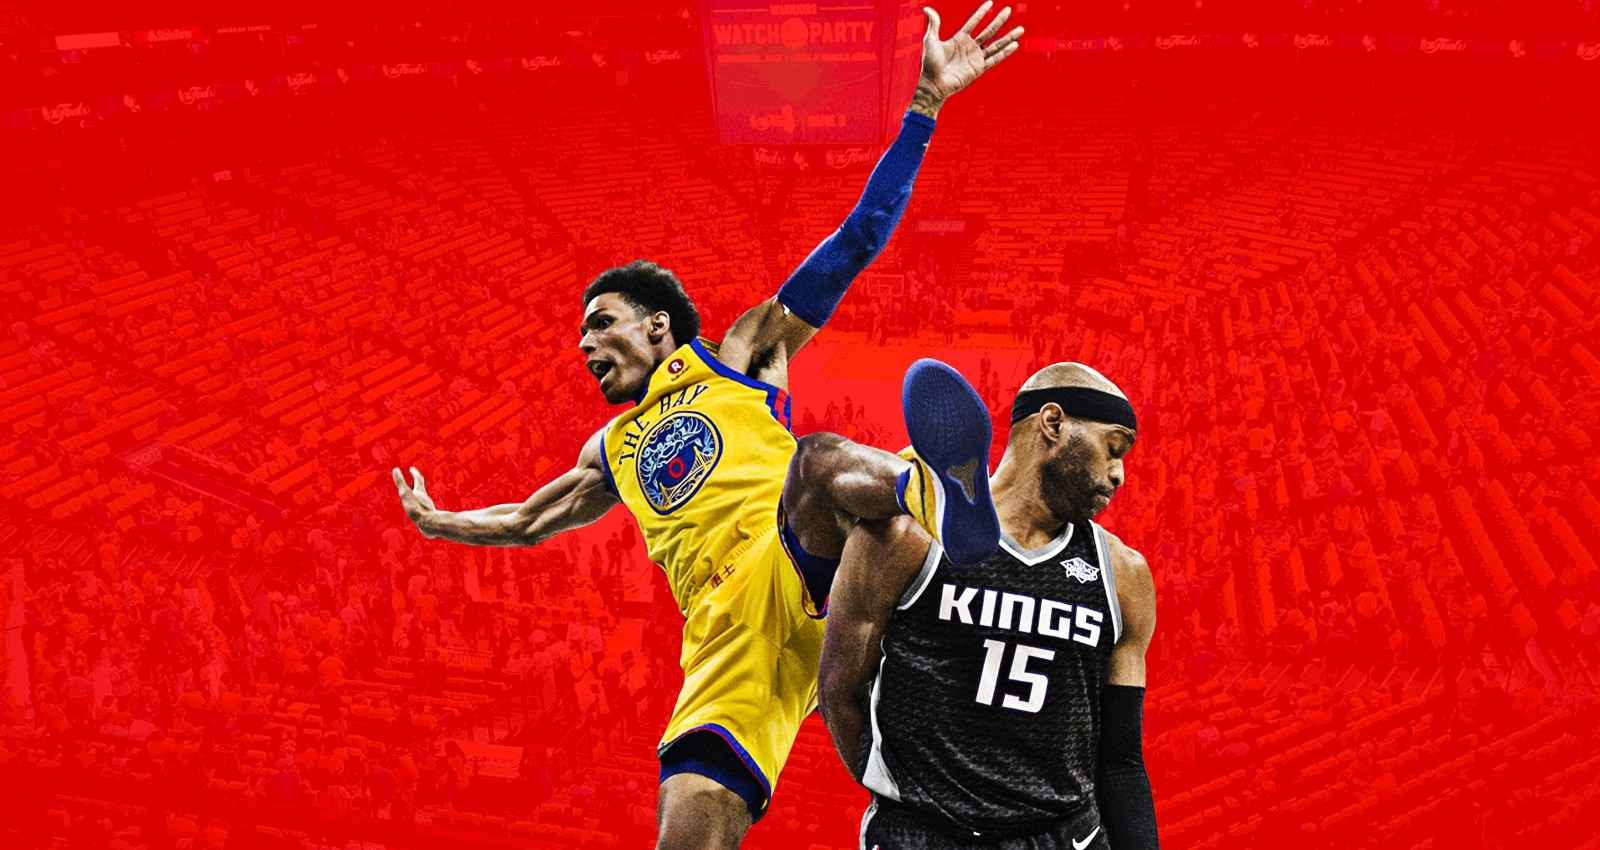 In this week\u0027s roundtable, the GSC panel debates the circumstances and  motivations behind Vince Carter\u0027s undercutting of Patrick McCaw.